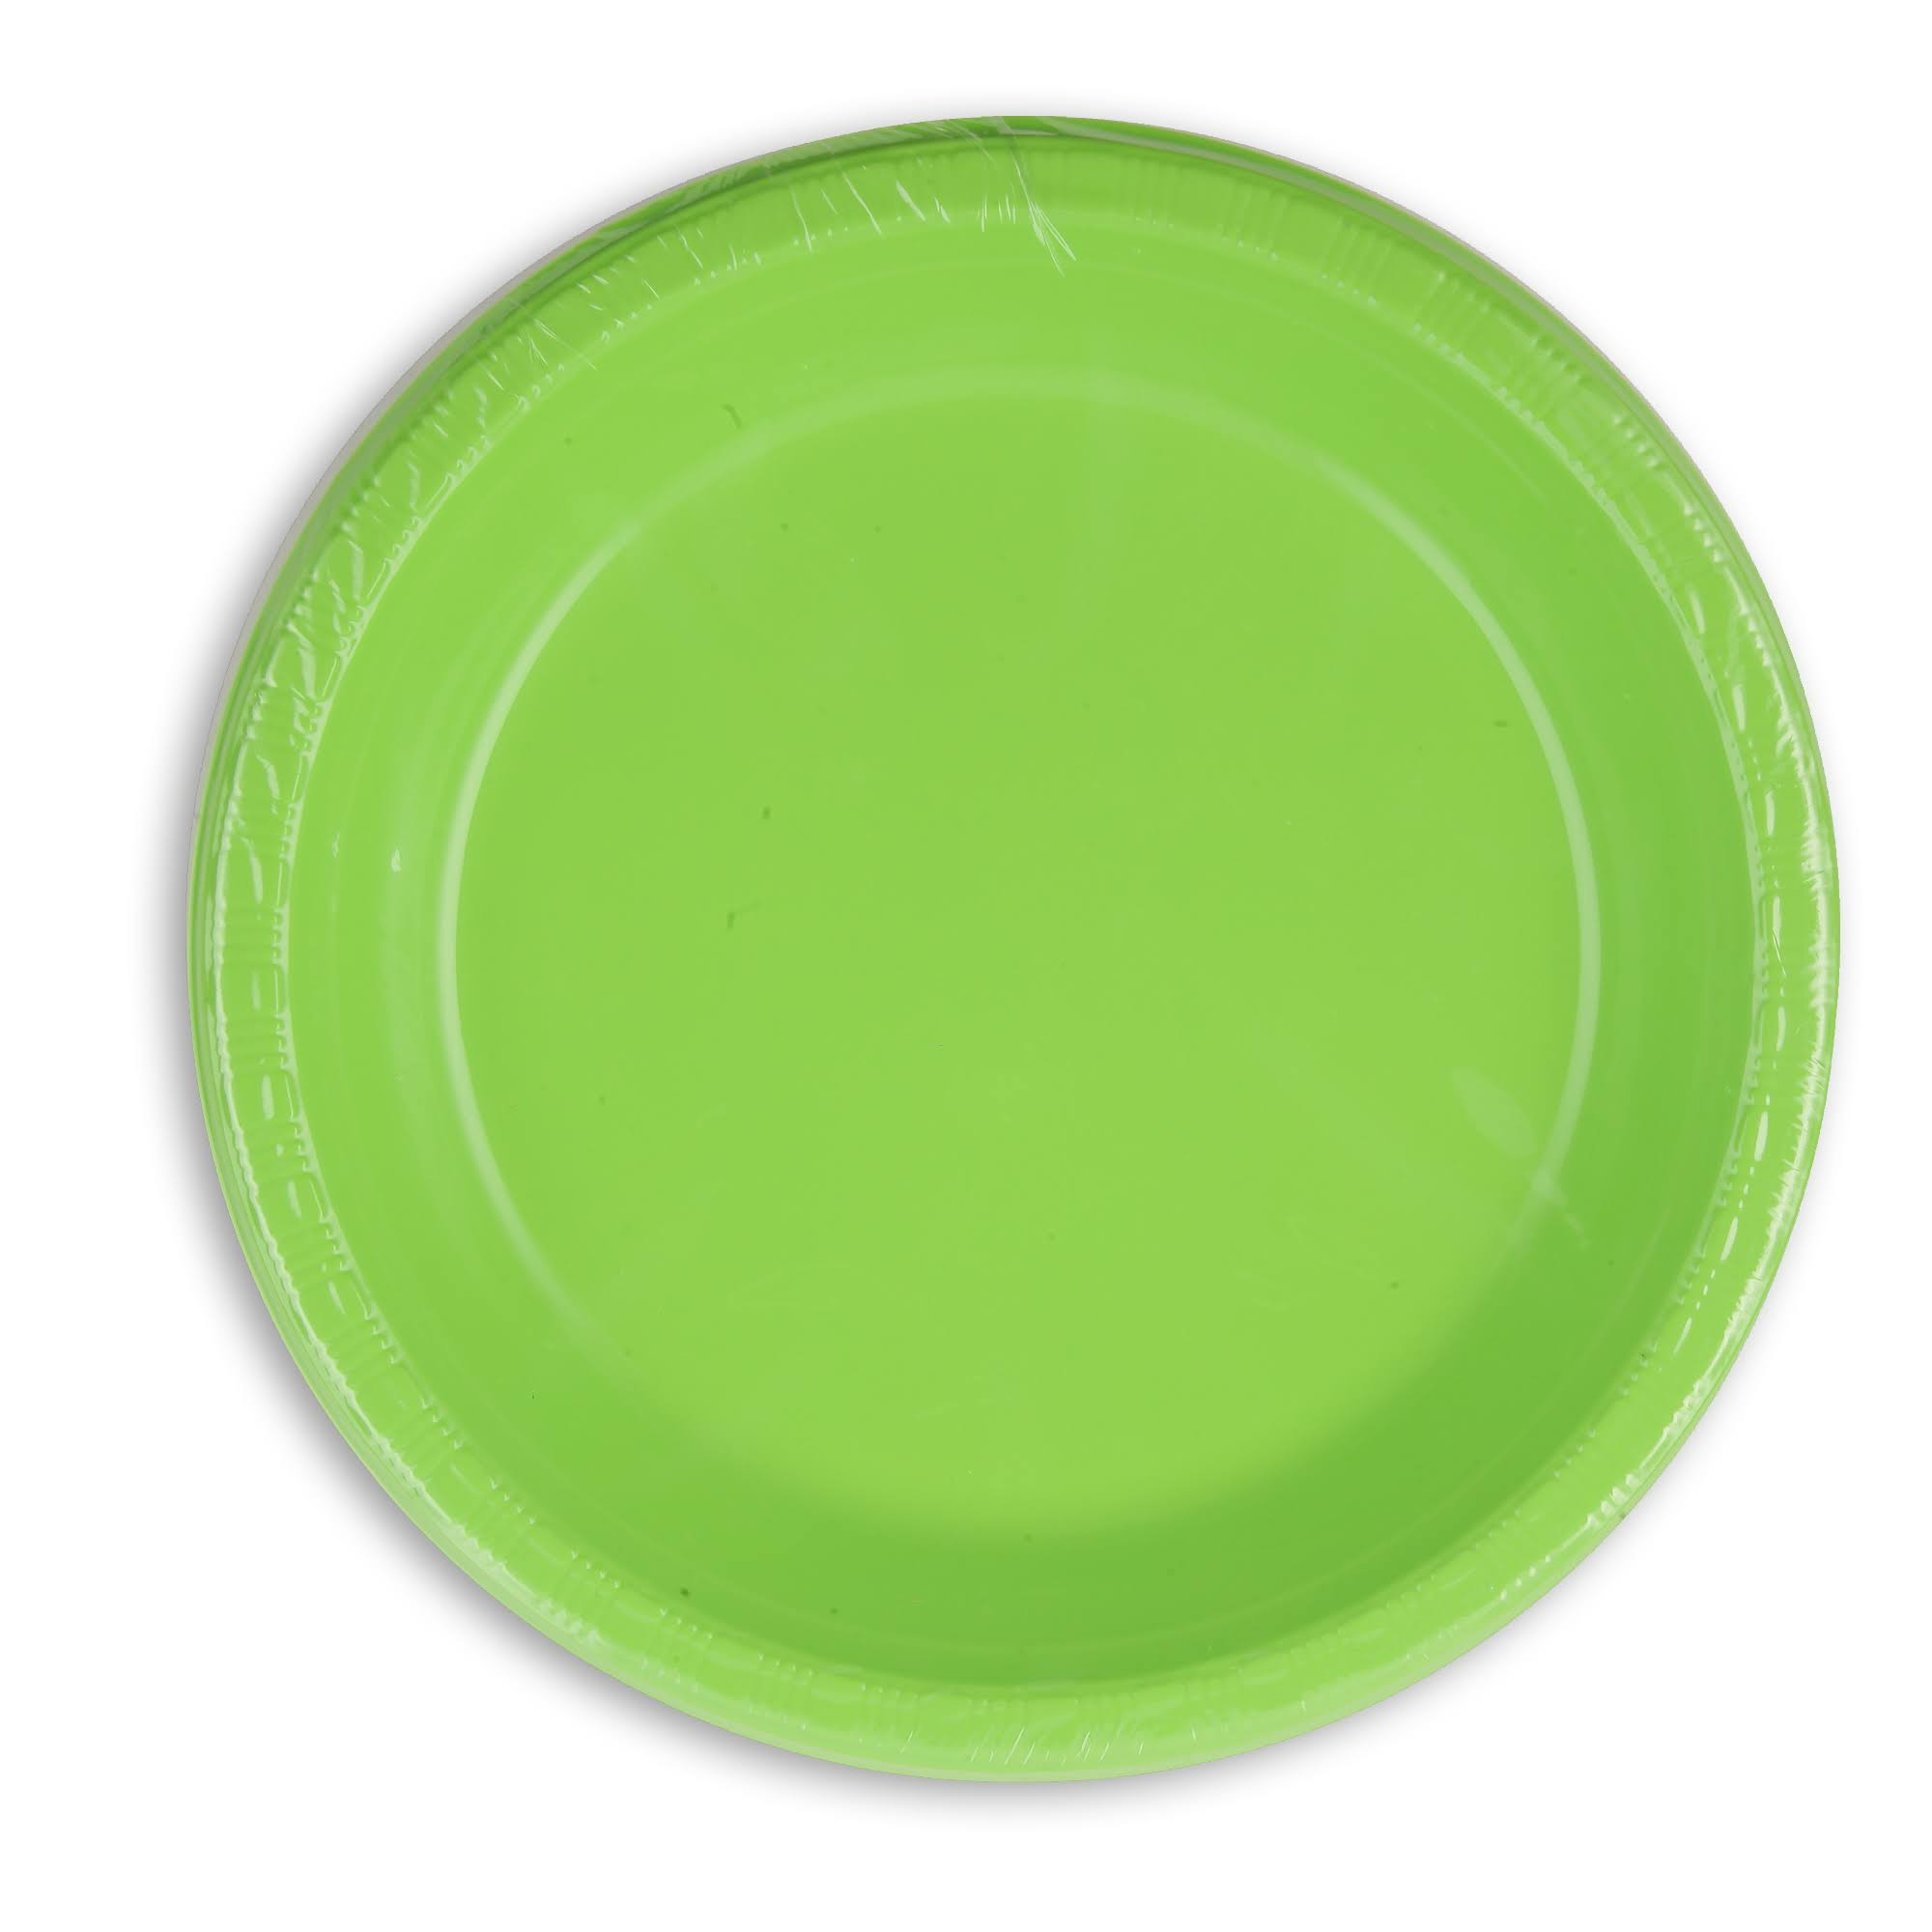 "Touch of Color Heavy Duty Plastic Plates - 10.25"", Fresh lime, 20ct"